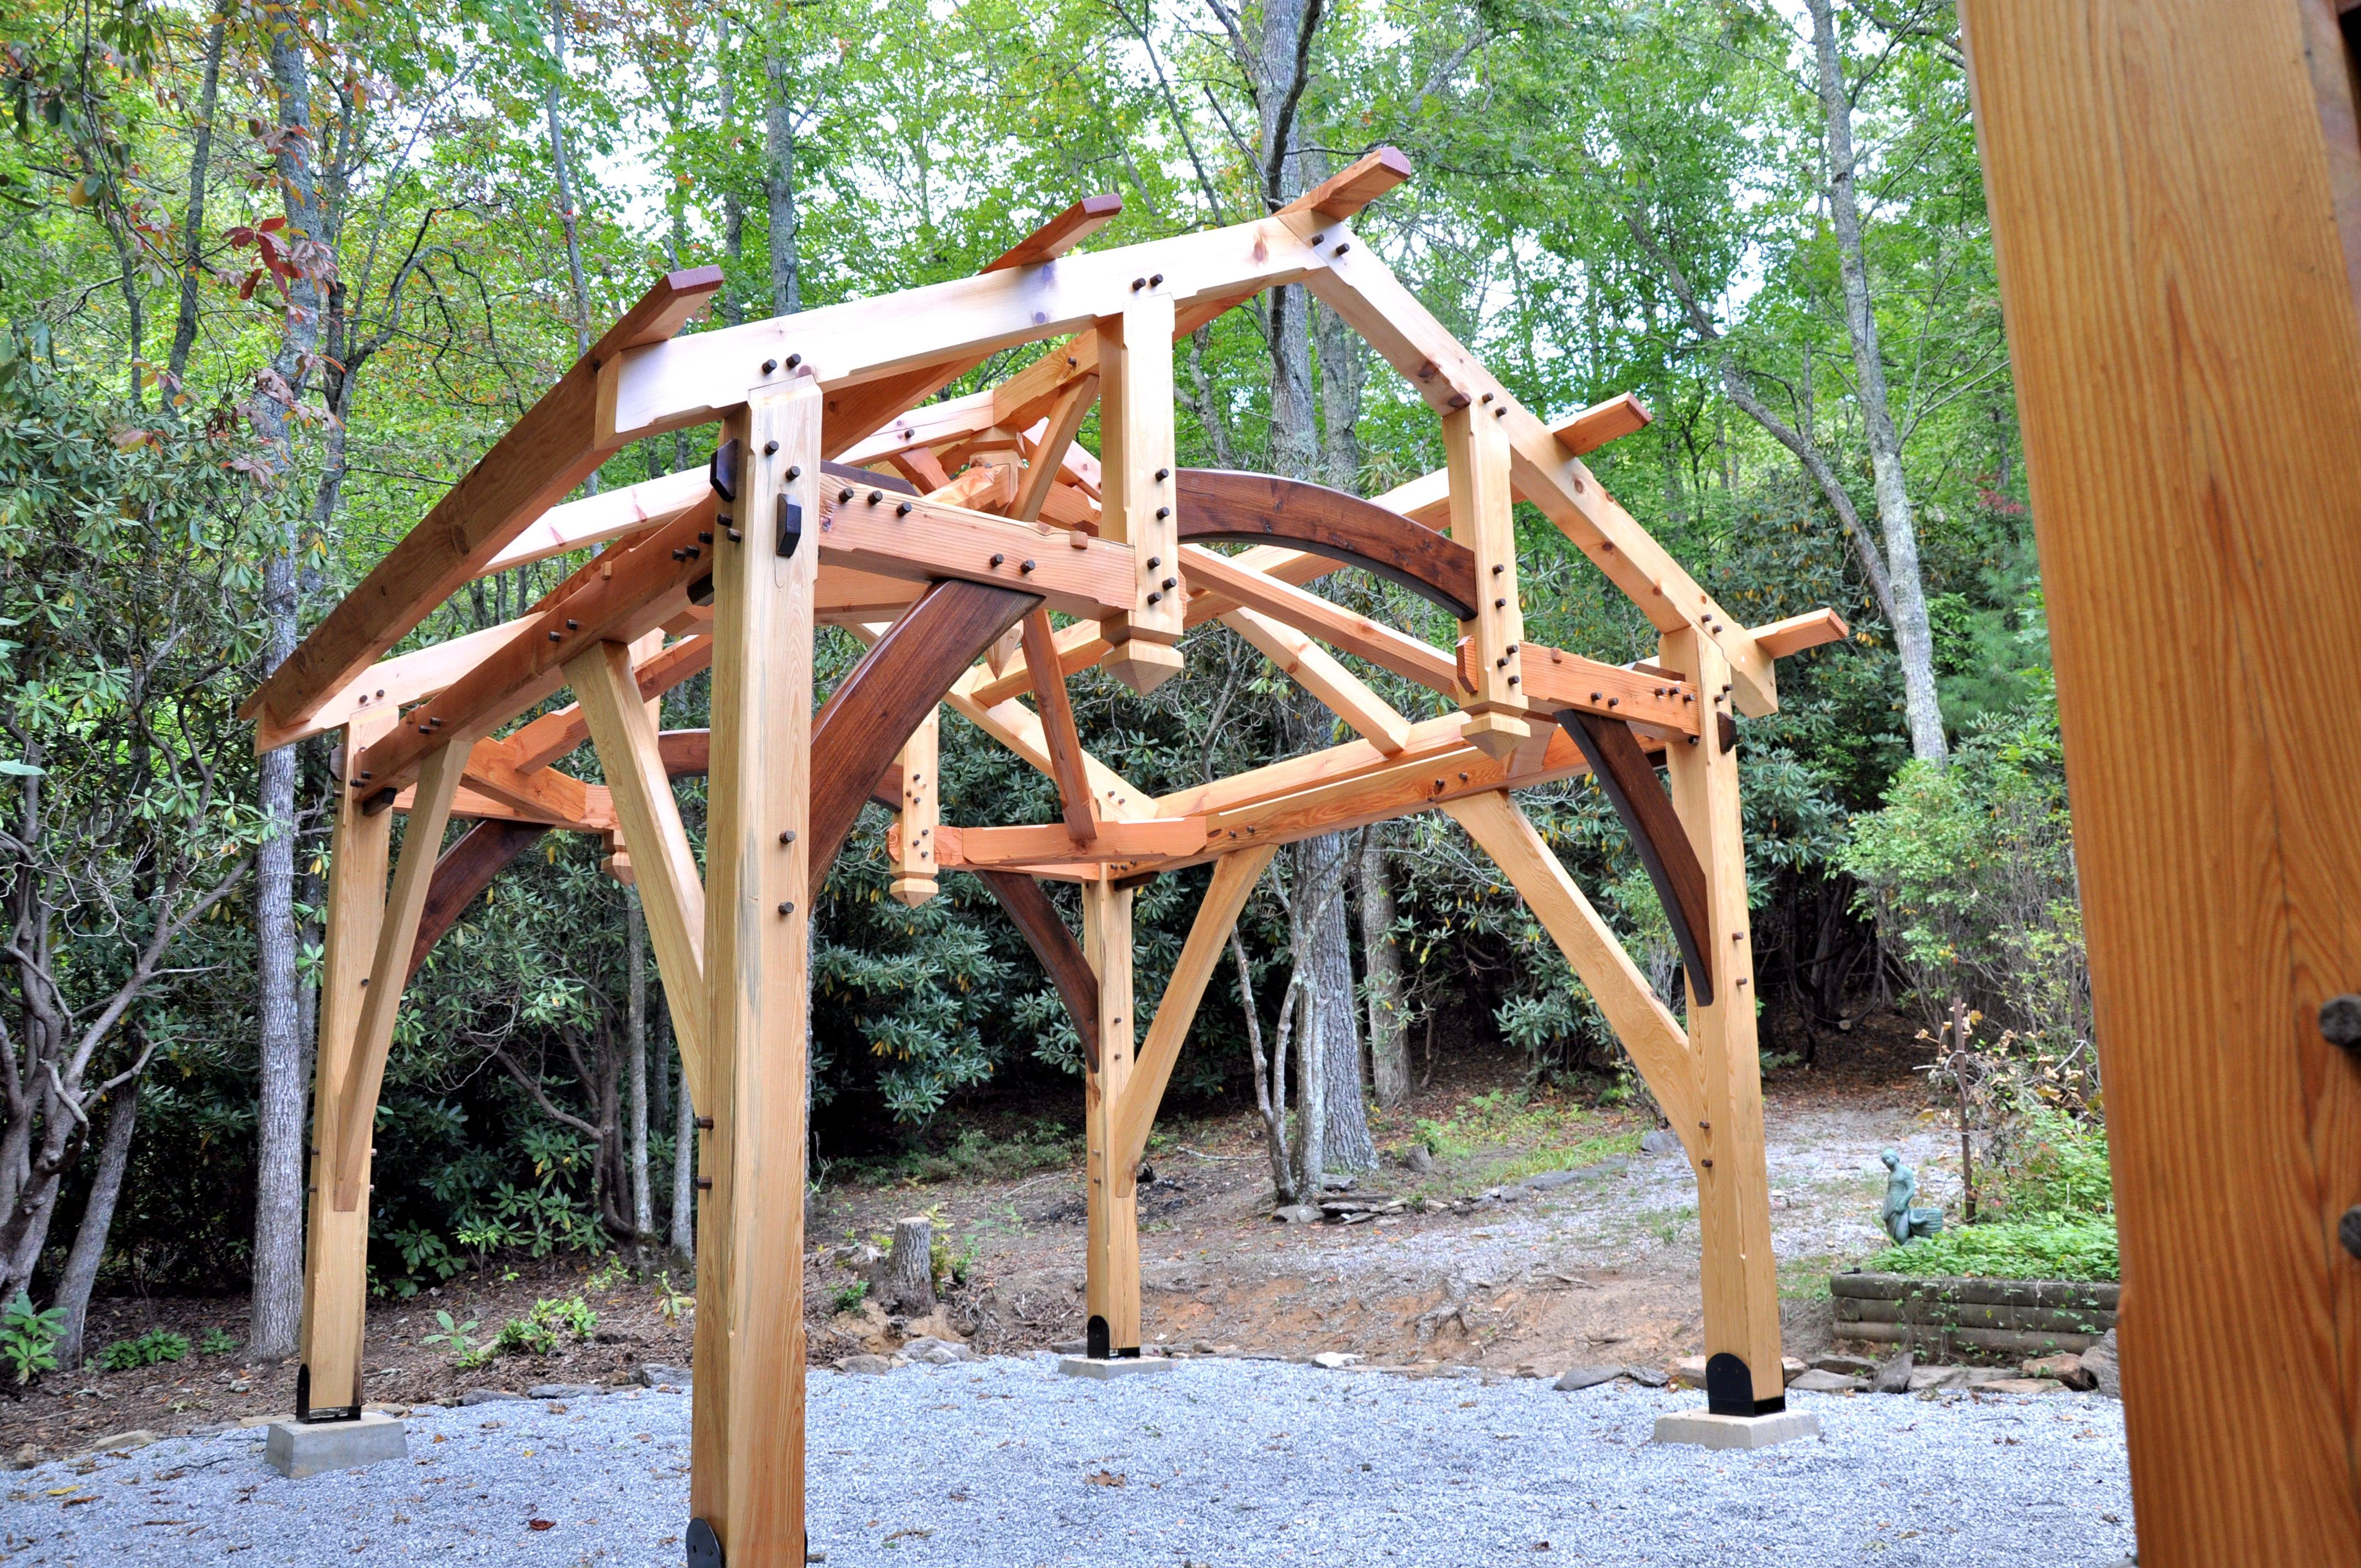 Timber Frame Garden Structures Cashiers 006 Jpg 4 288